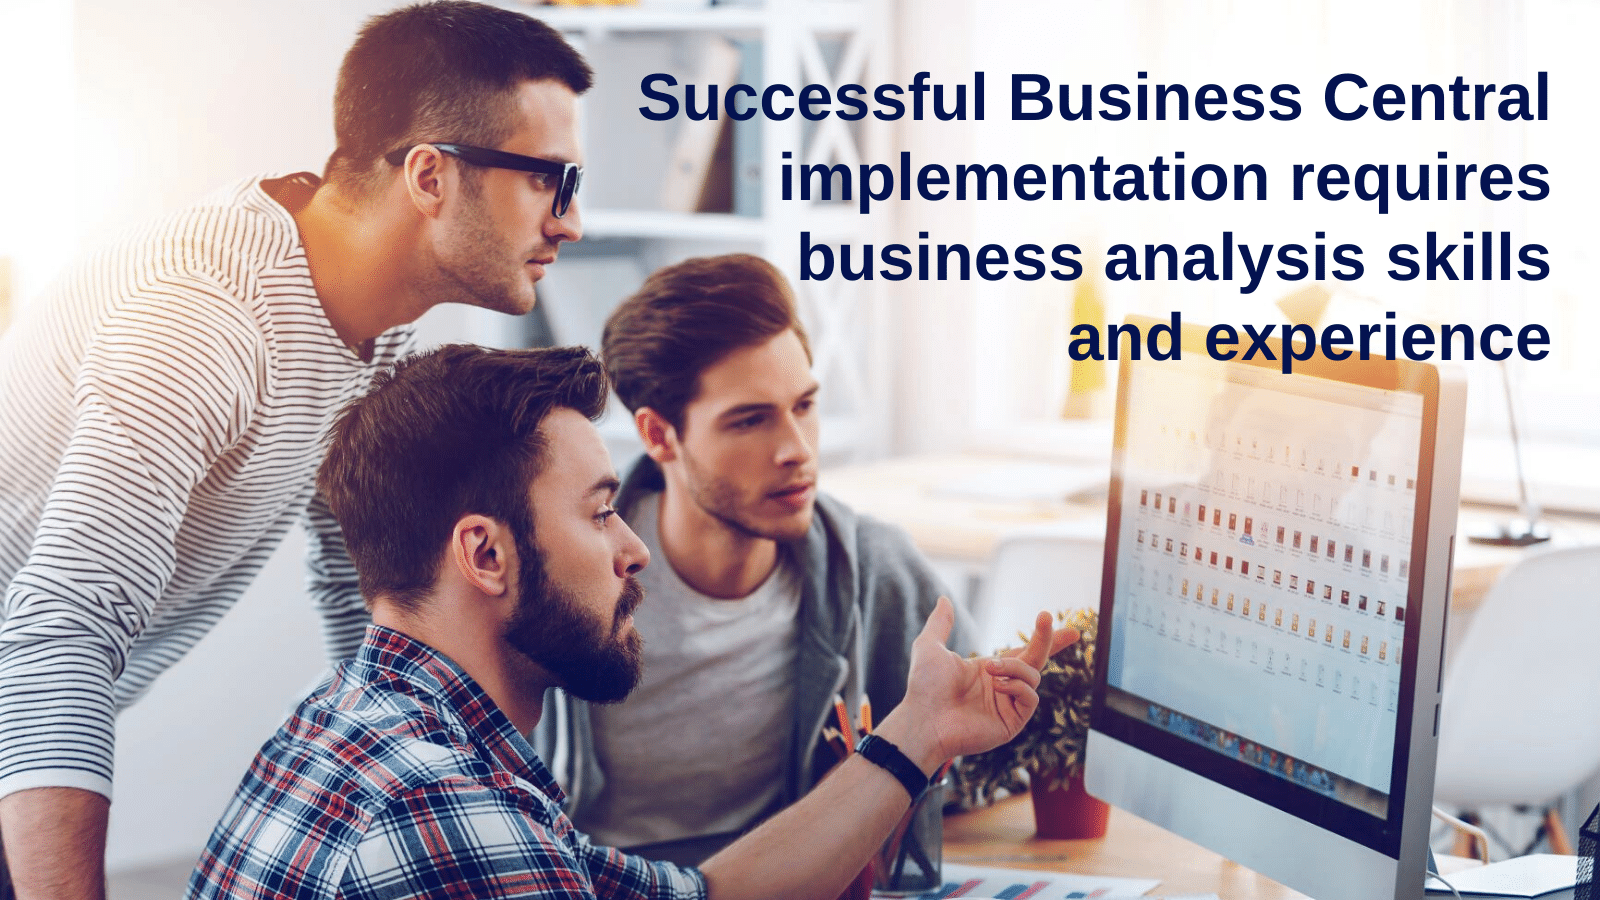 Successful Business Central implementation requires business analysis skills and experience